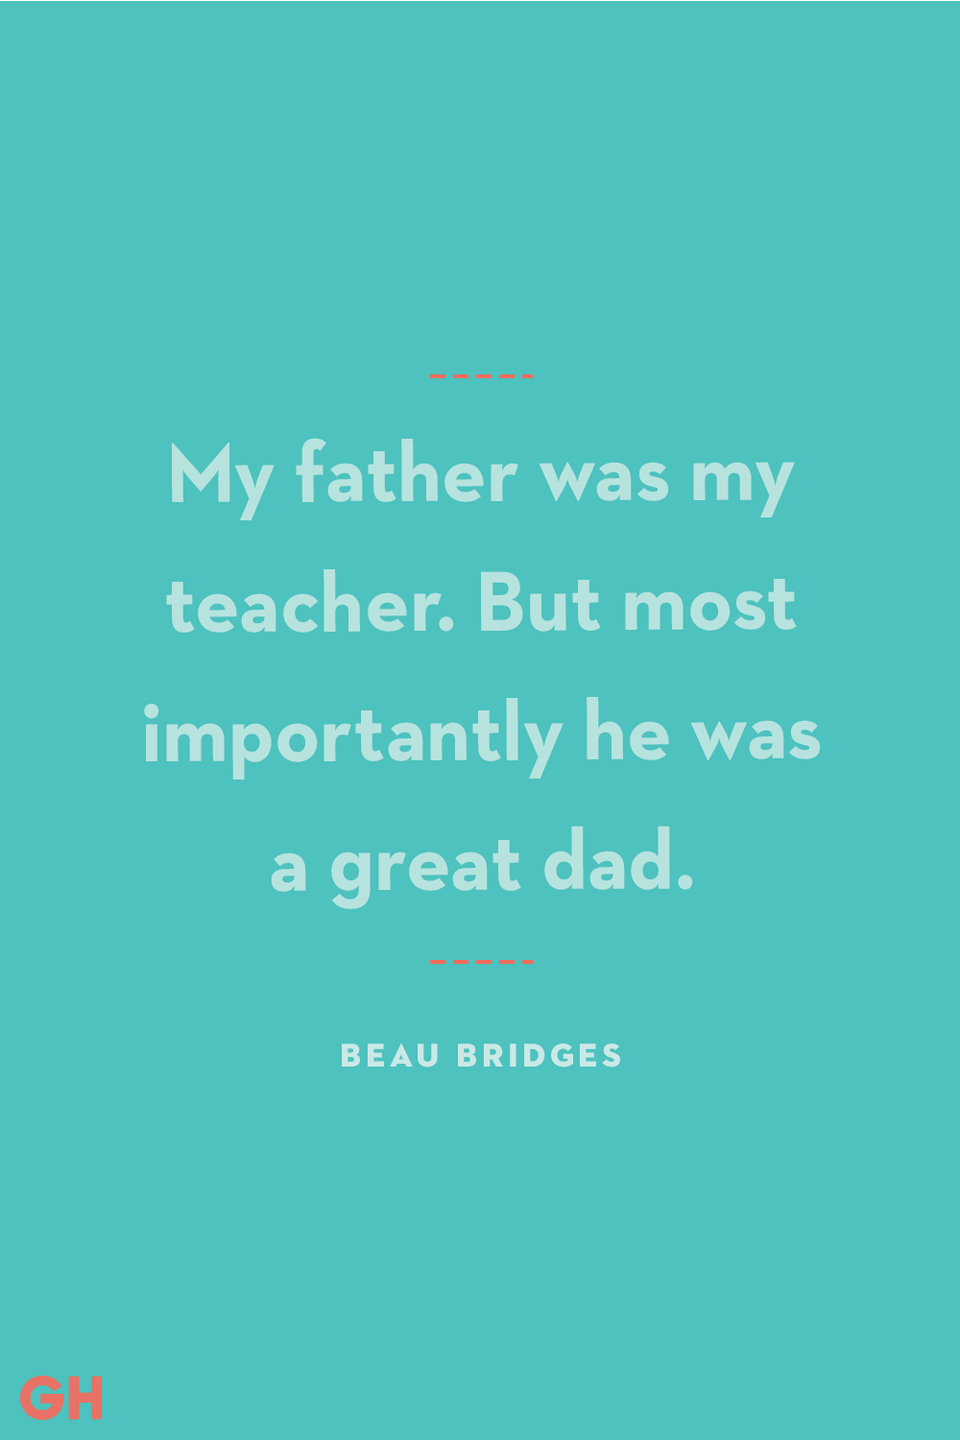 <p>My father was my teacher. But most importantly he was a great dad.</p>